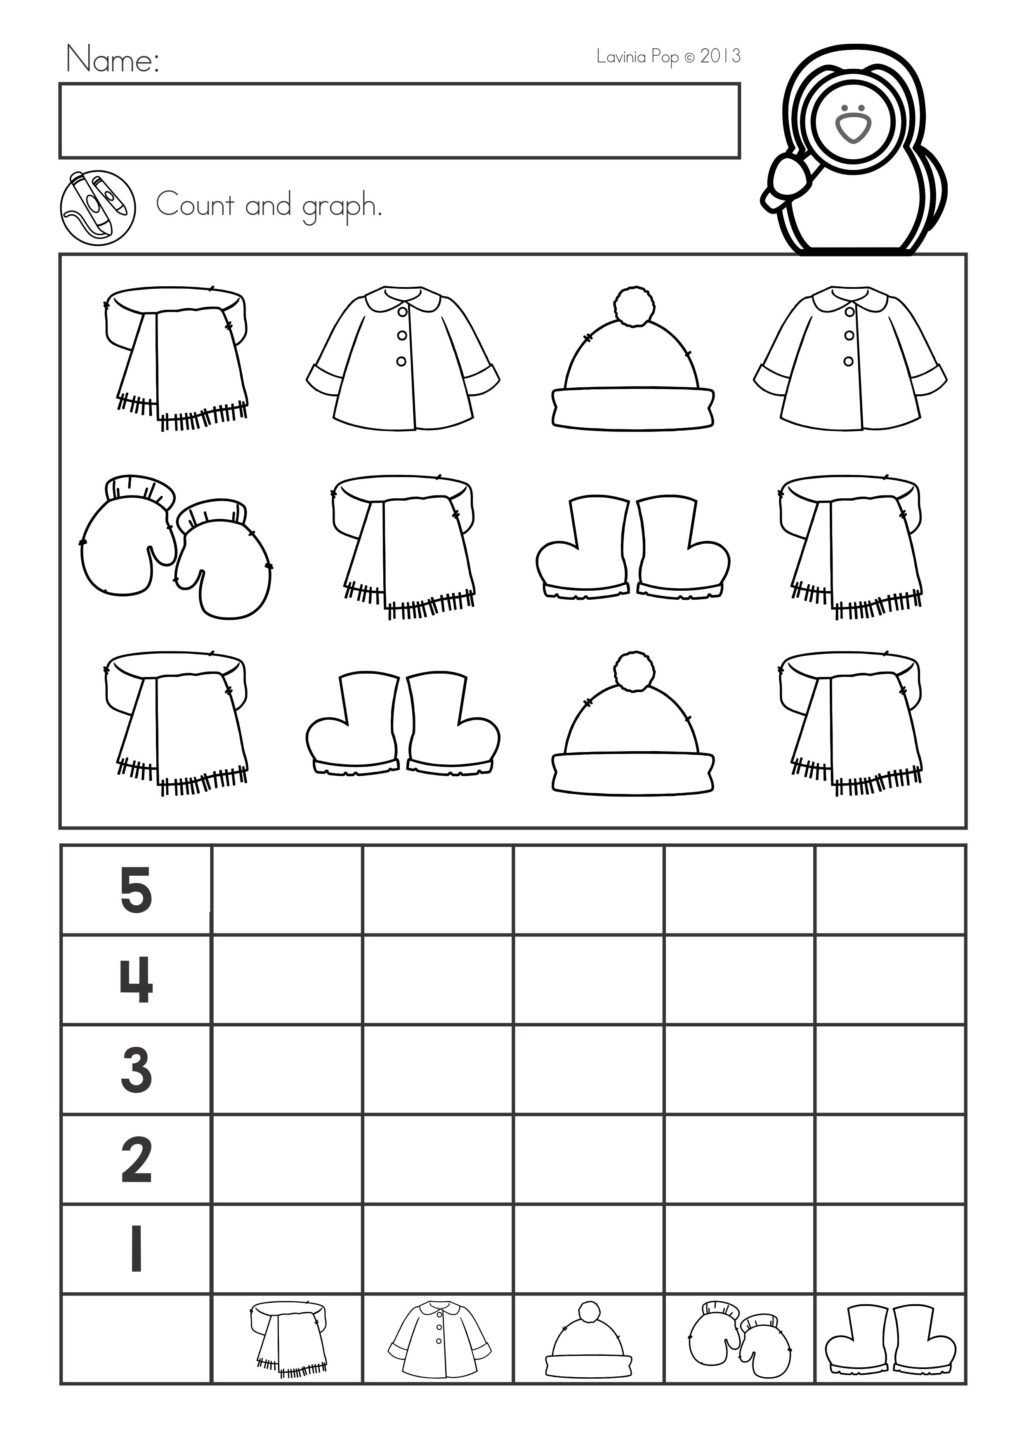 Act Prep Worksheets English Worksheet Worksheet Free Ged Preporksheets Printable Sat